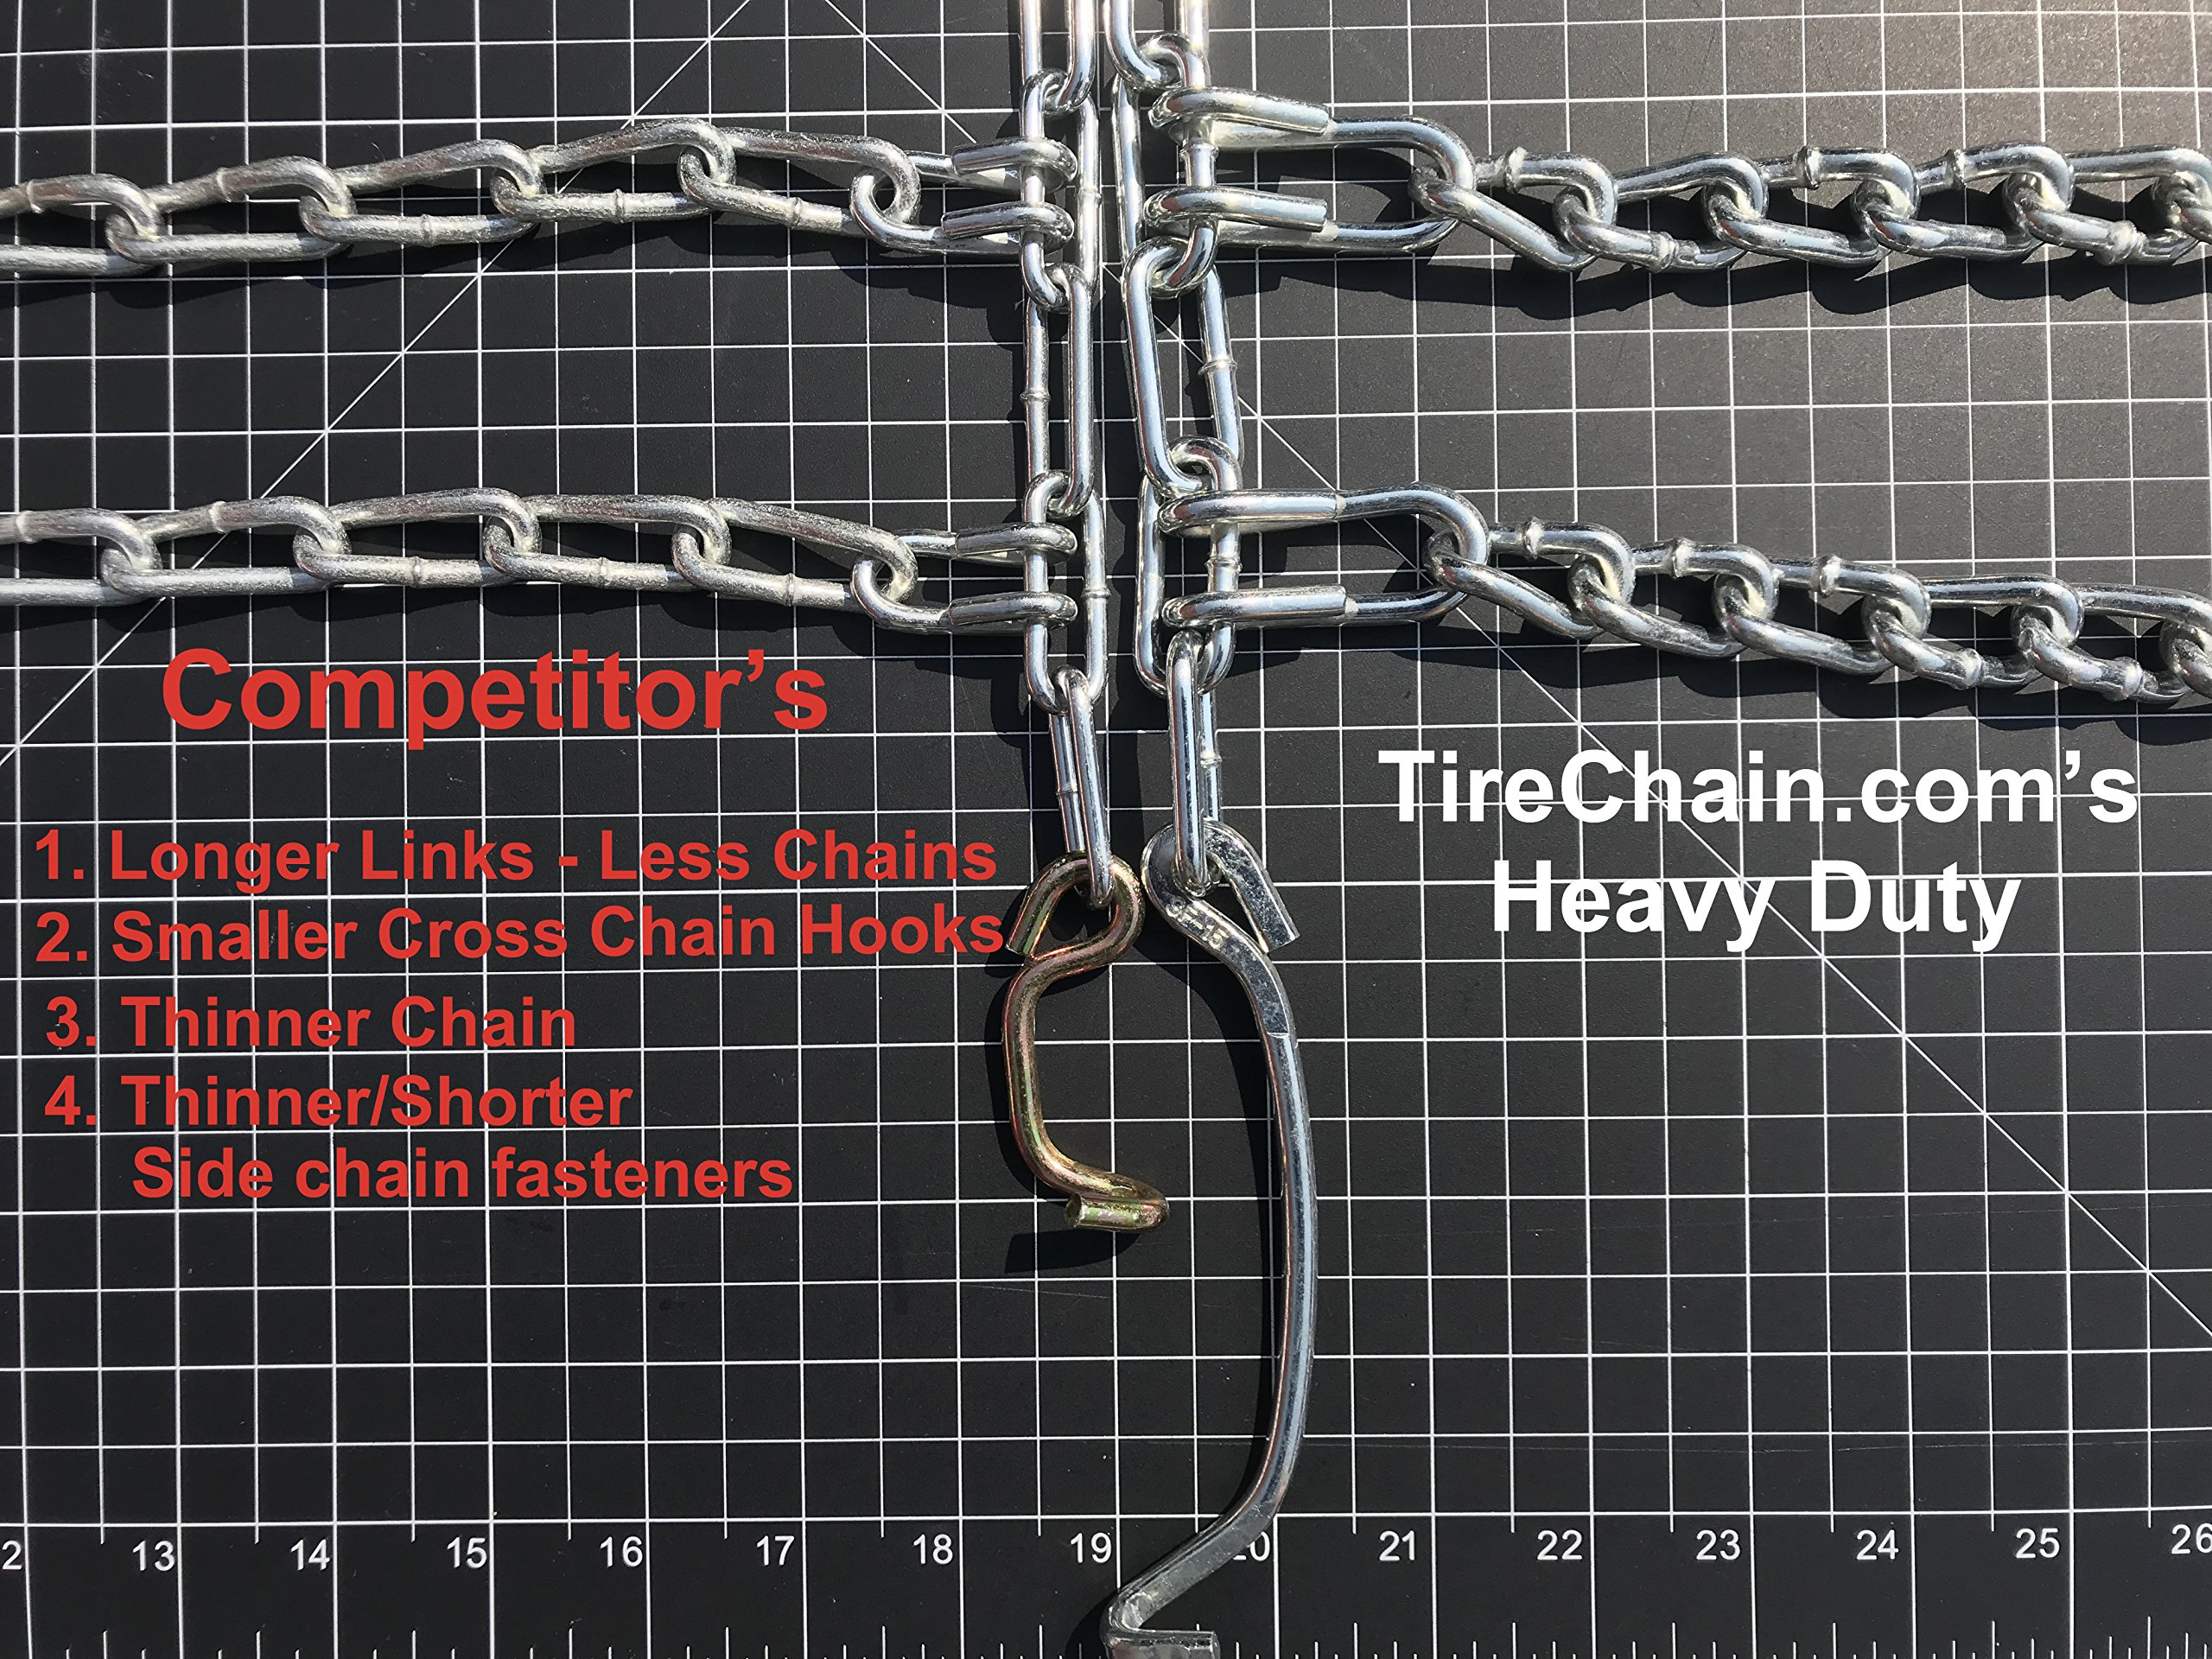 TireChain.com Heavy Duty, 2-link Lawn and Garden Tire Chains, Priced per pair. 23 X 9.50 X 12, 23 X 10.50 X 12 by TireChain.com (Image #5)